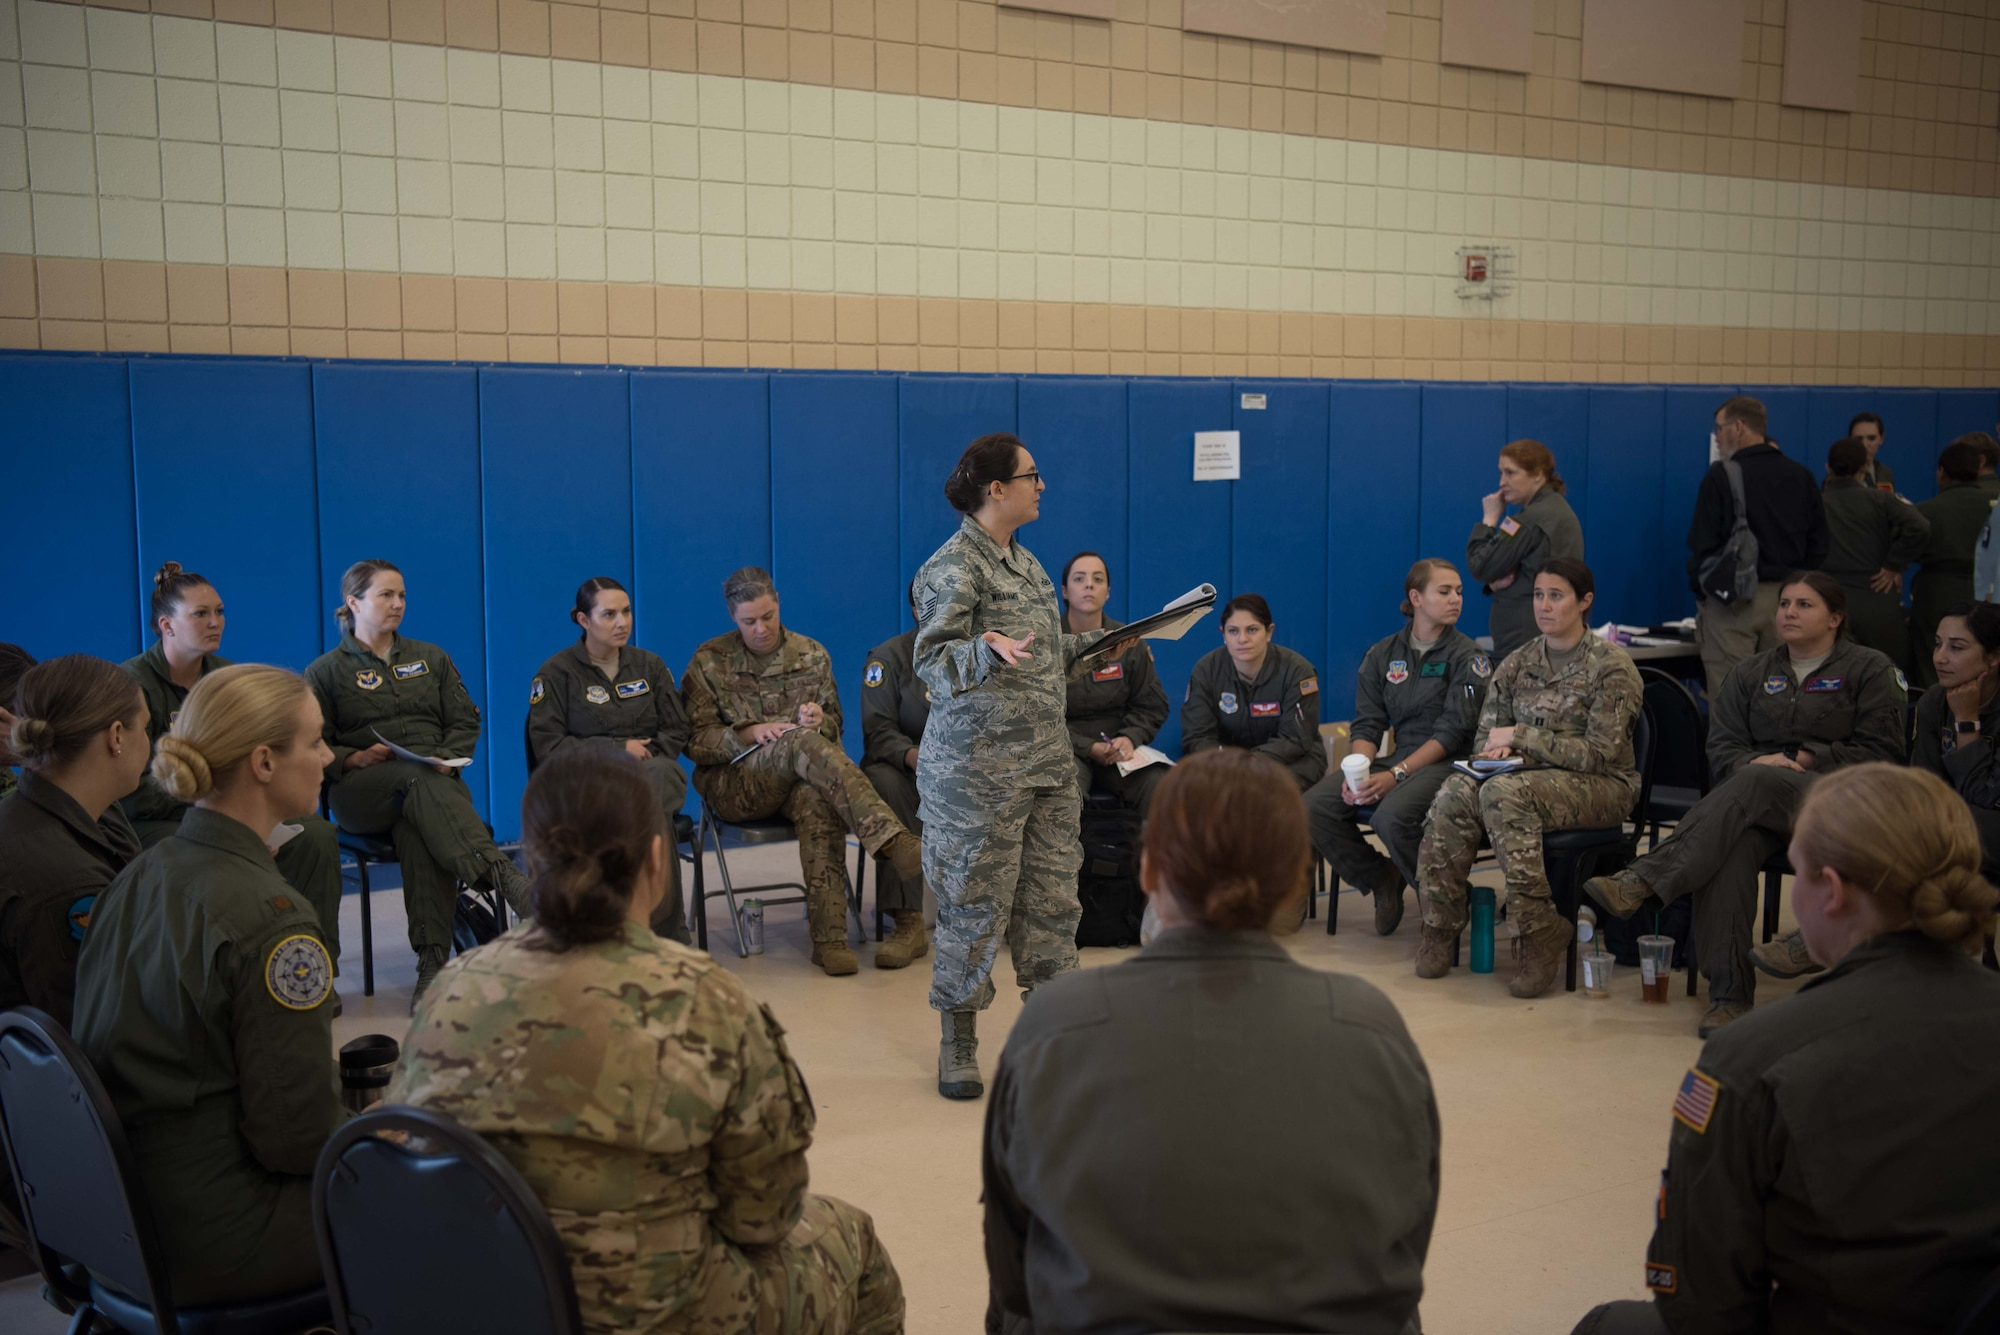 A group of U.S. Air Force and U.S. Navy female aviators have a discussion about some of the improvements they want to see made to their flight equipment during a Female Fitment Event at Joint Base Langley-Eustis, Virginia, June 4, 2019. The event took measurements from female aviators from the U.S. Air Force and the U.S. Navy at various stages in their careers, to get an accurate depiction of the changes needed to flight equipment. (U.S. Air Force photo by Airman 1st Class Marcus M. Bullock)